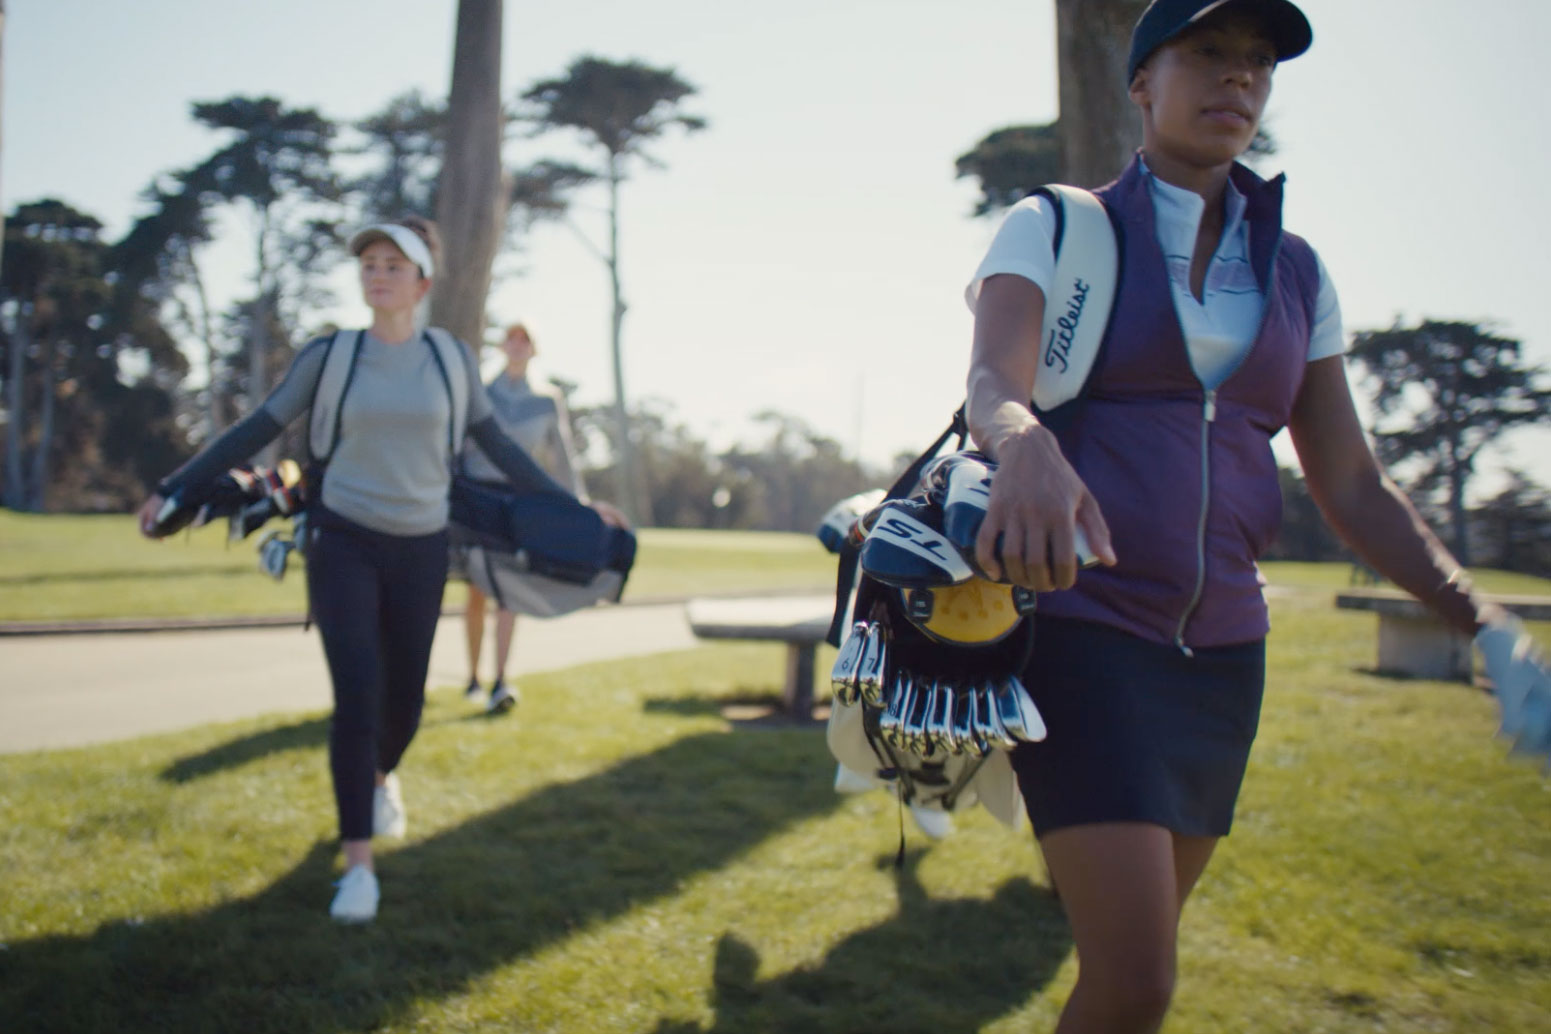 Titleist: Prove It For Yourself